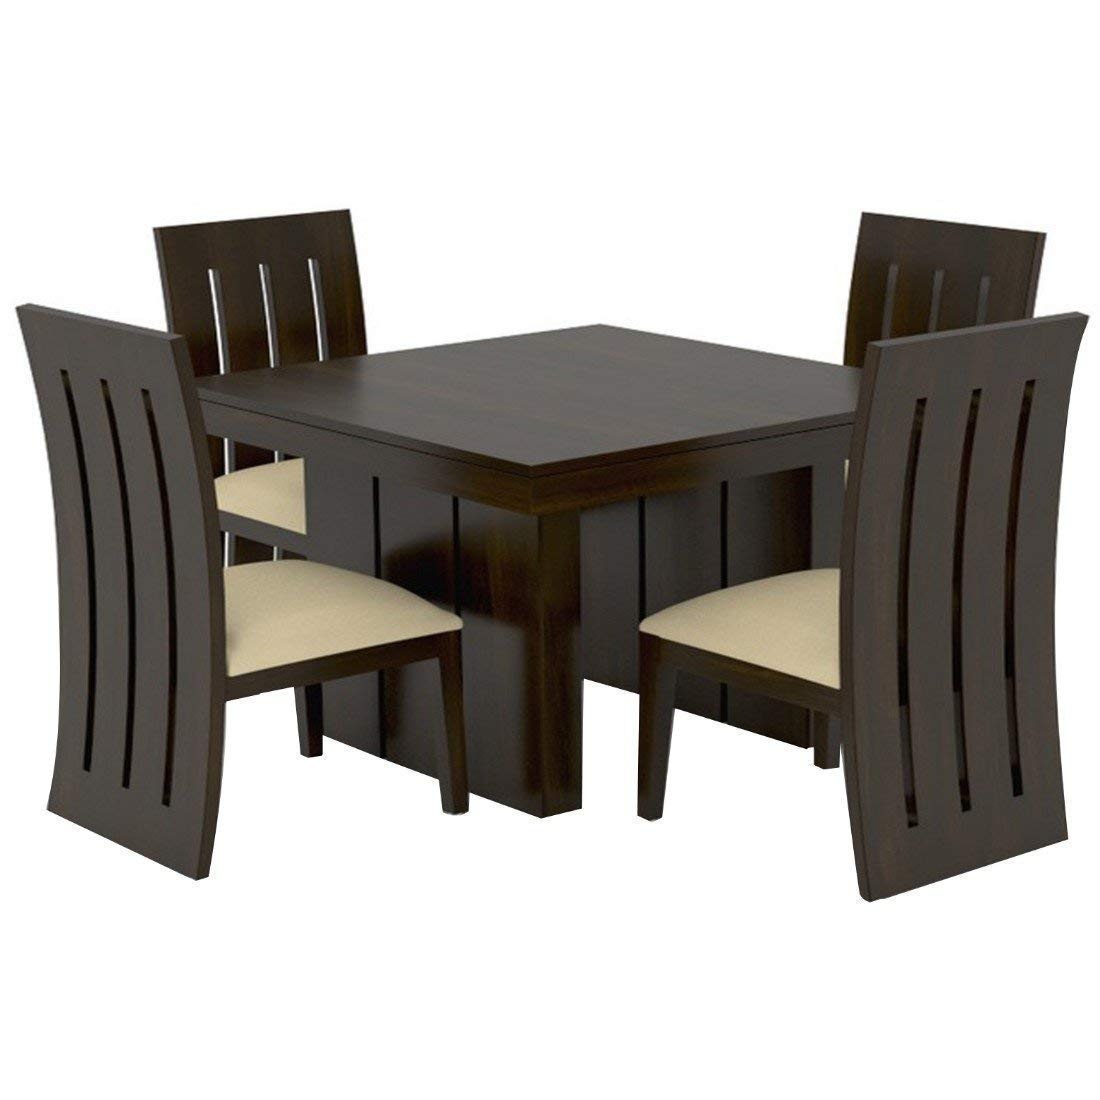 Mamta Decoration Sheesham Wood 4 Seater Dining Table Set With Cream Cushioned Chairs For Home Dark Walnut Amazon In Home Kitchen